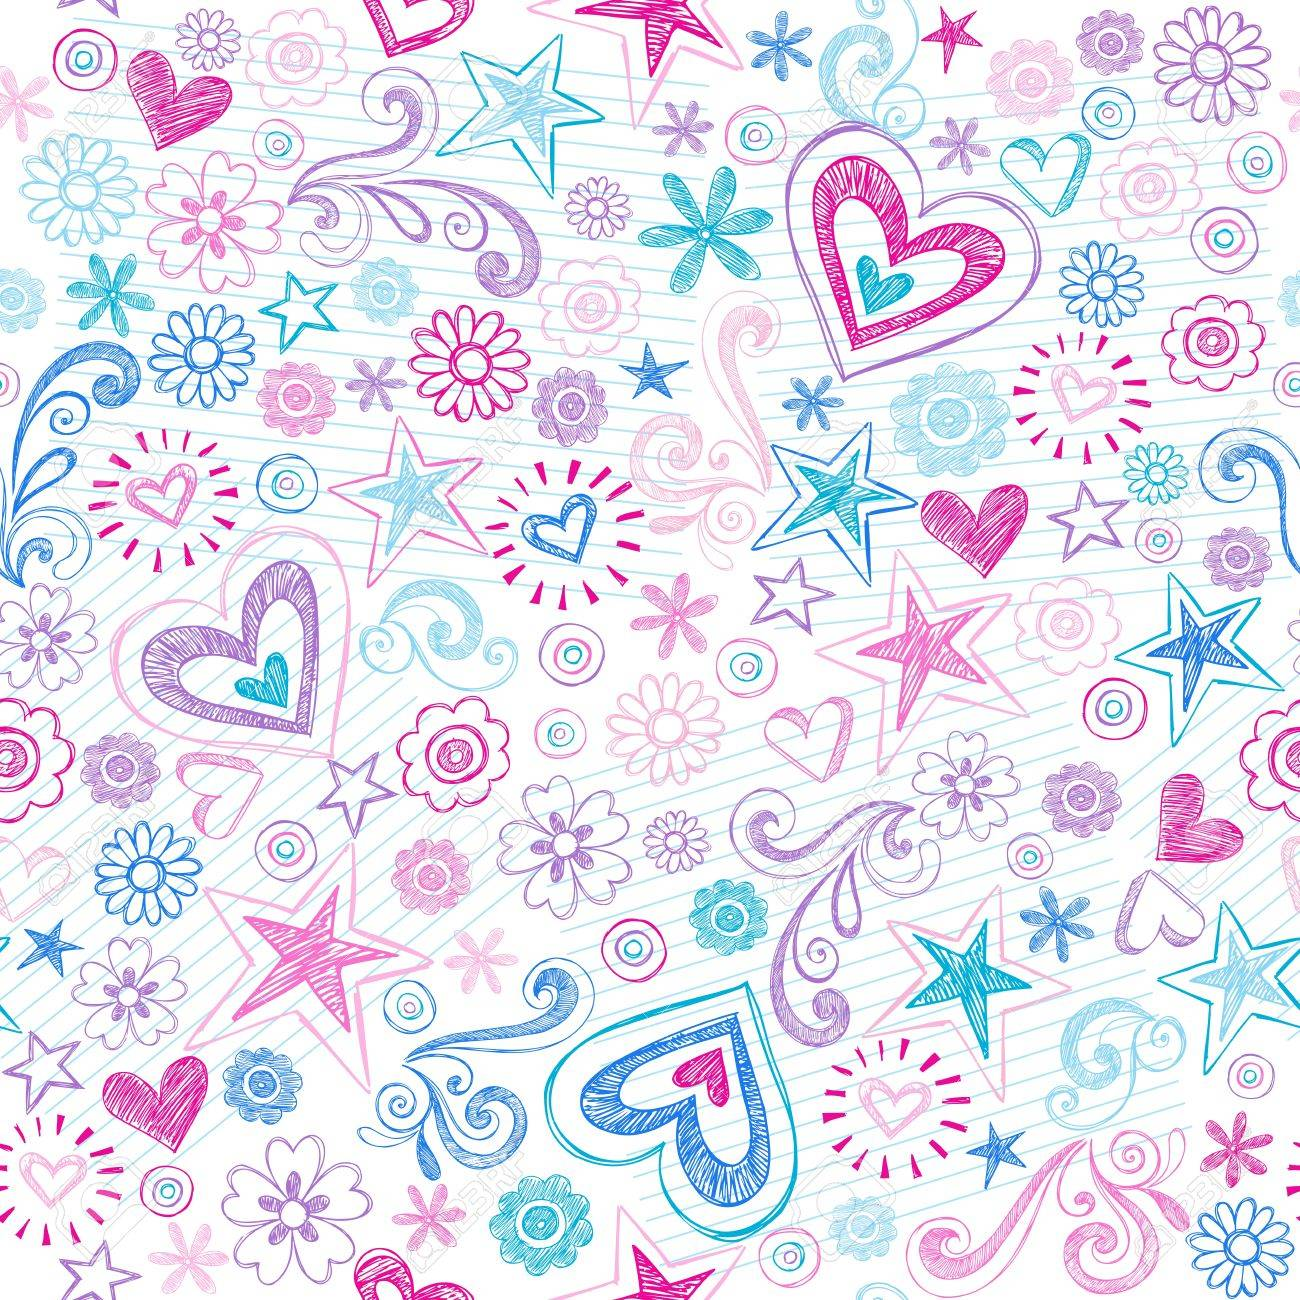 Seamless Pattern Hearts and Stars Back to School Sketchy Notebook Doodle Design- Hand-Drawn Vector Illustration Background Stock Vector - 13383861